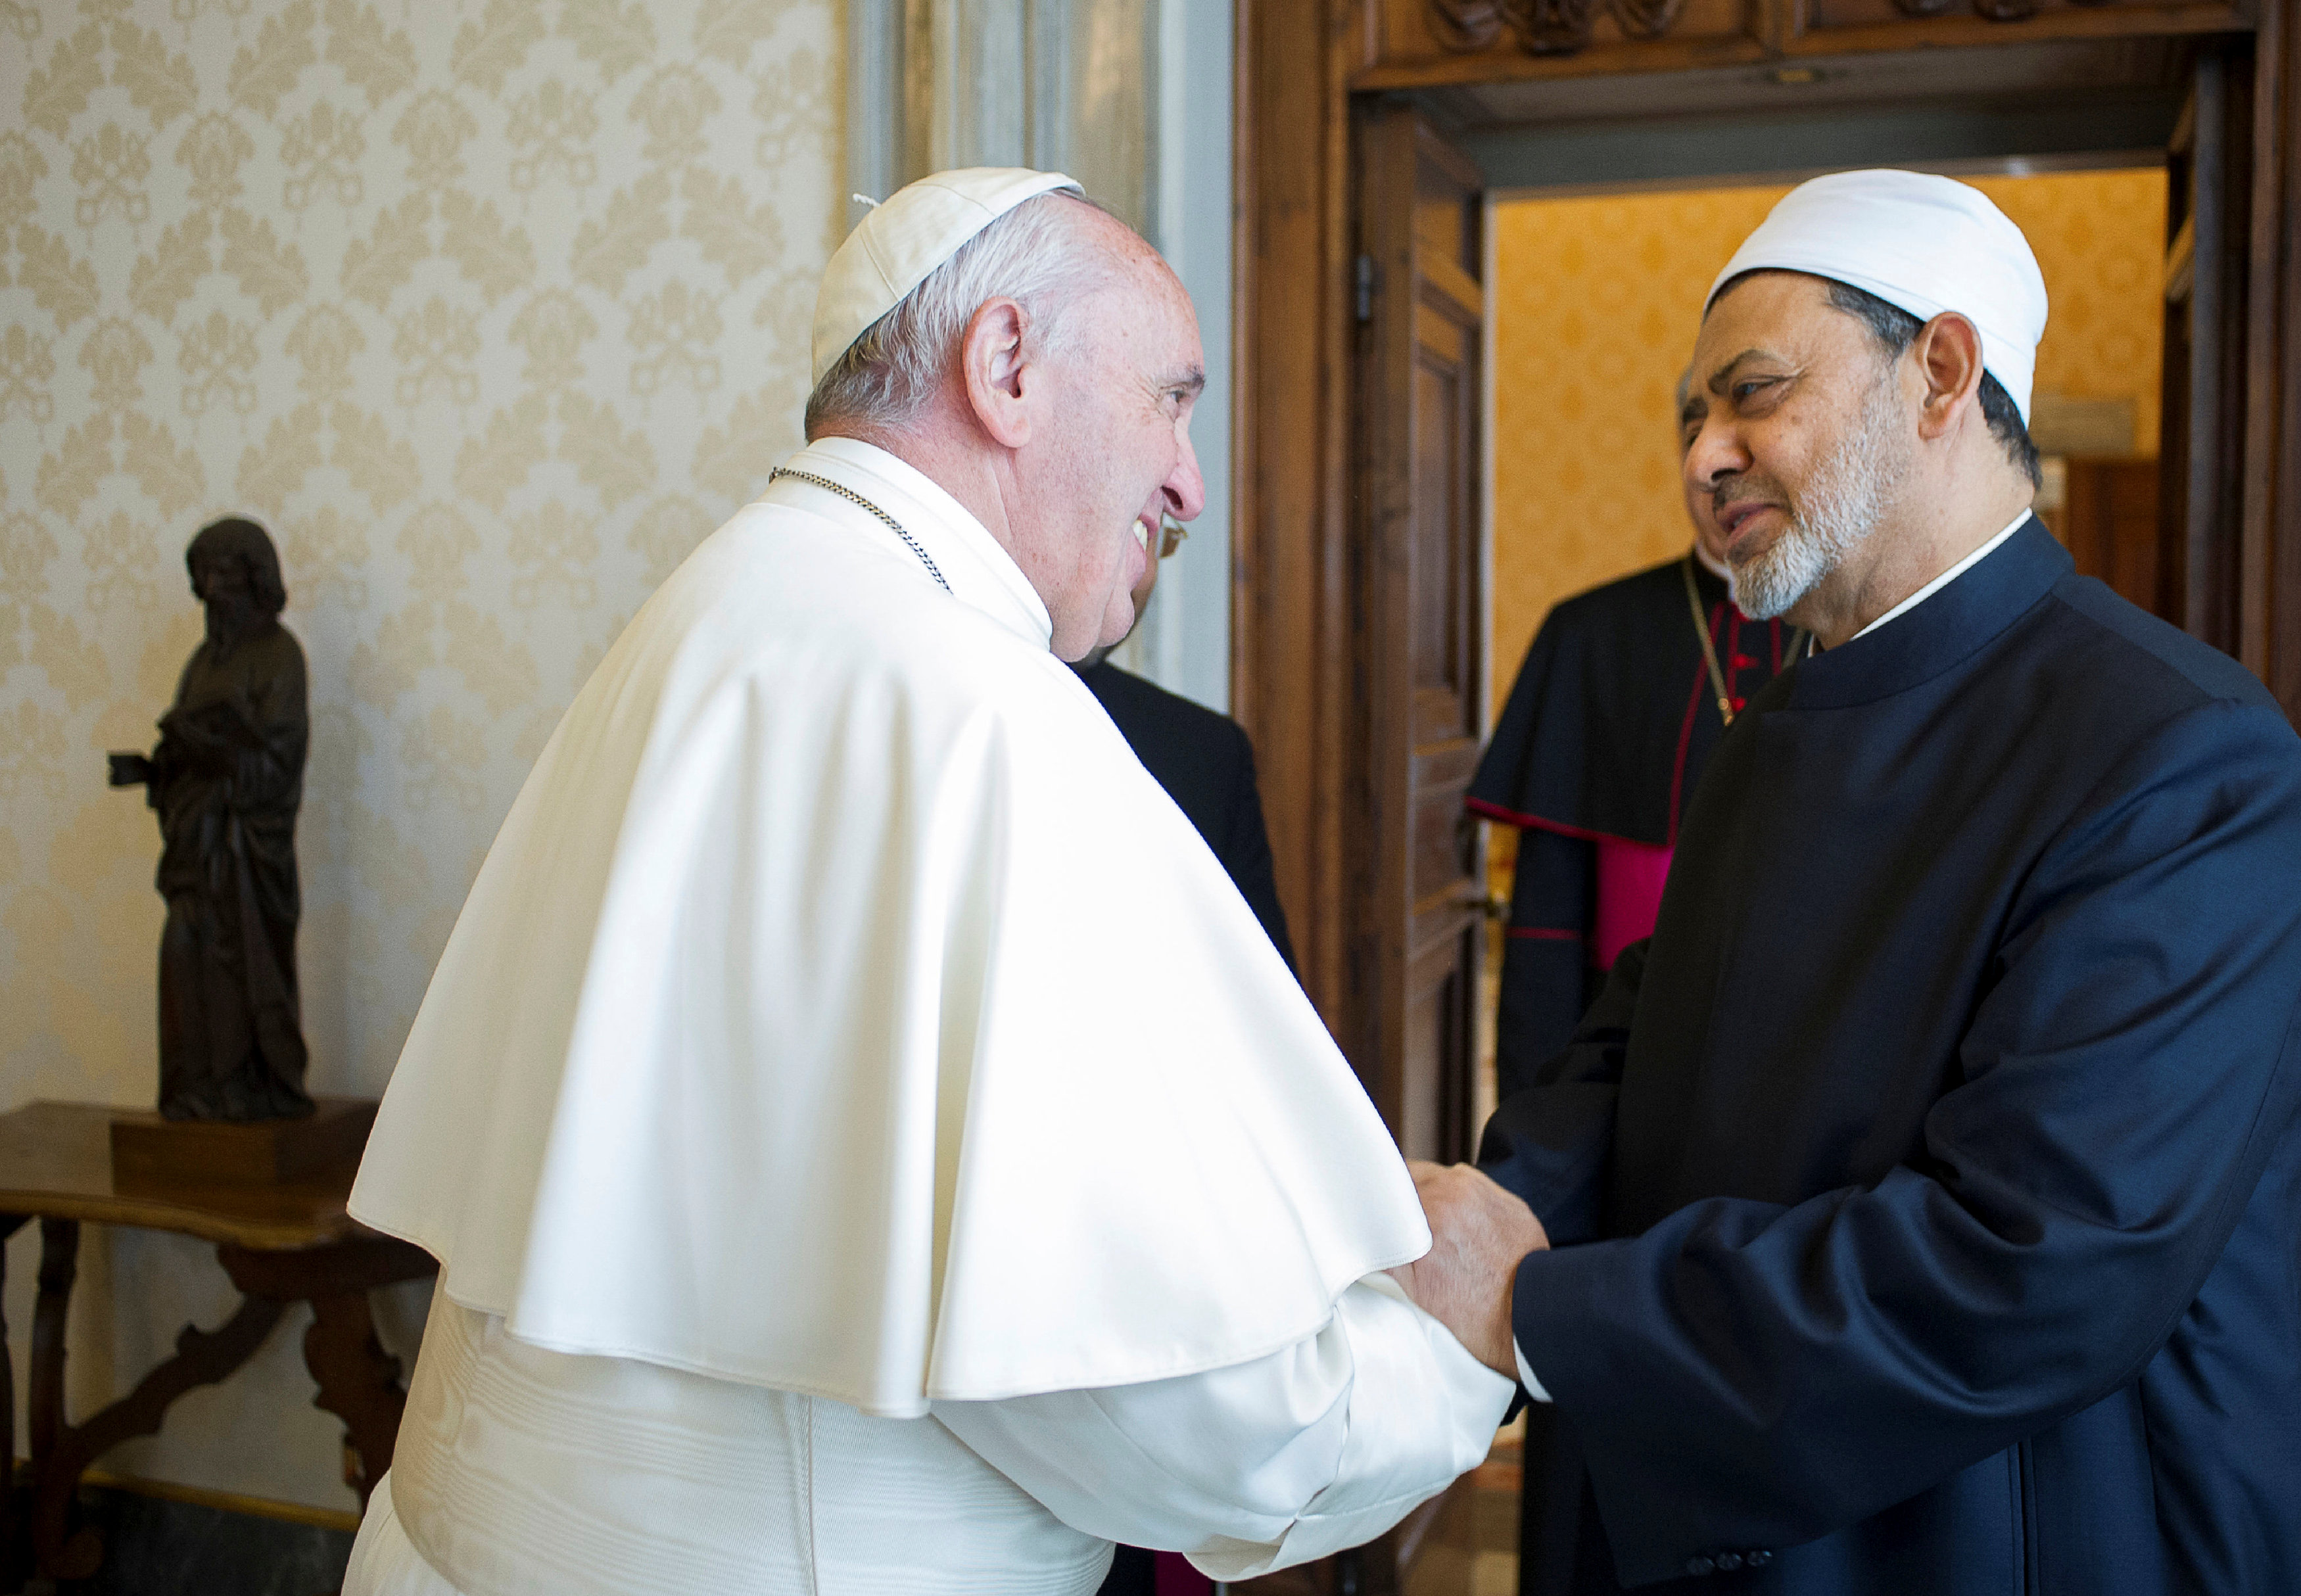 Pope Francis In Egypt Seeking Better Relations With The Muslim